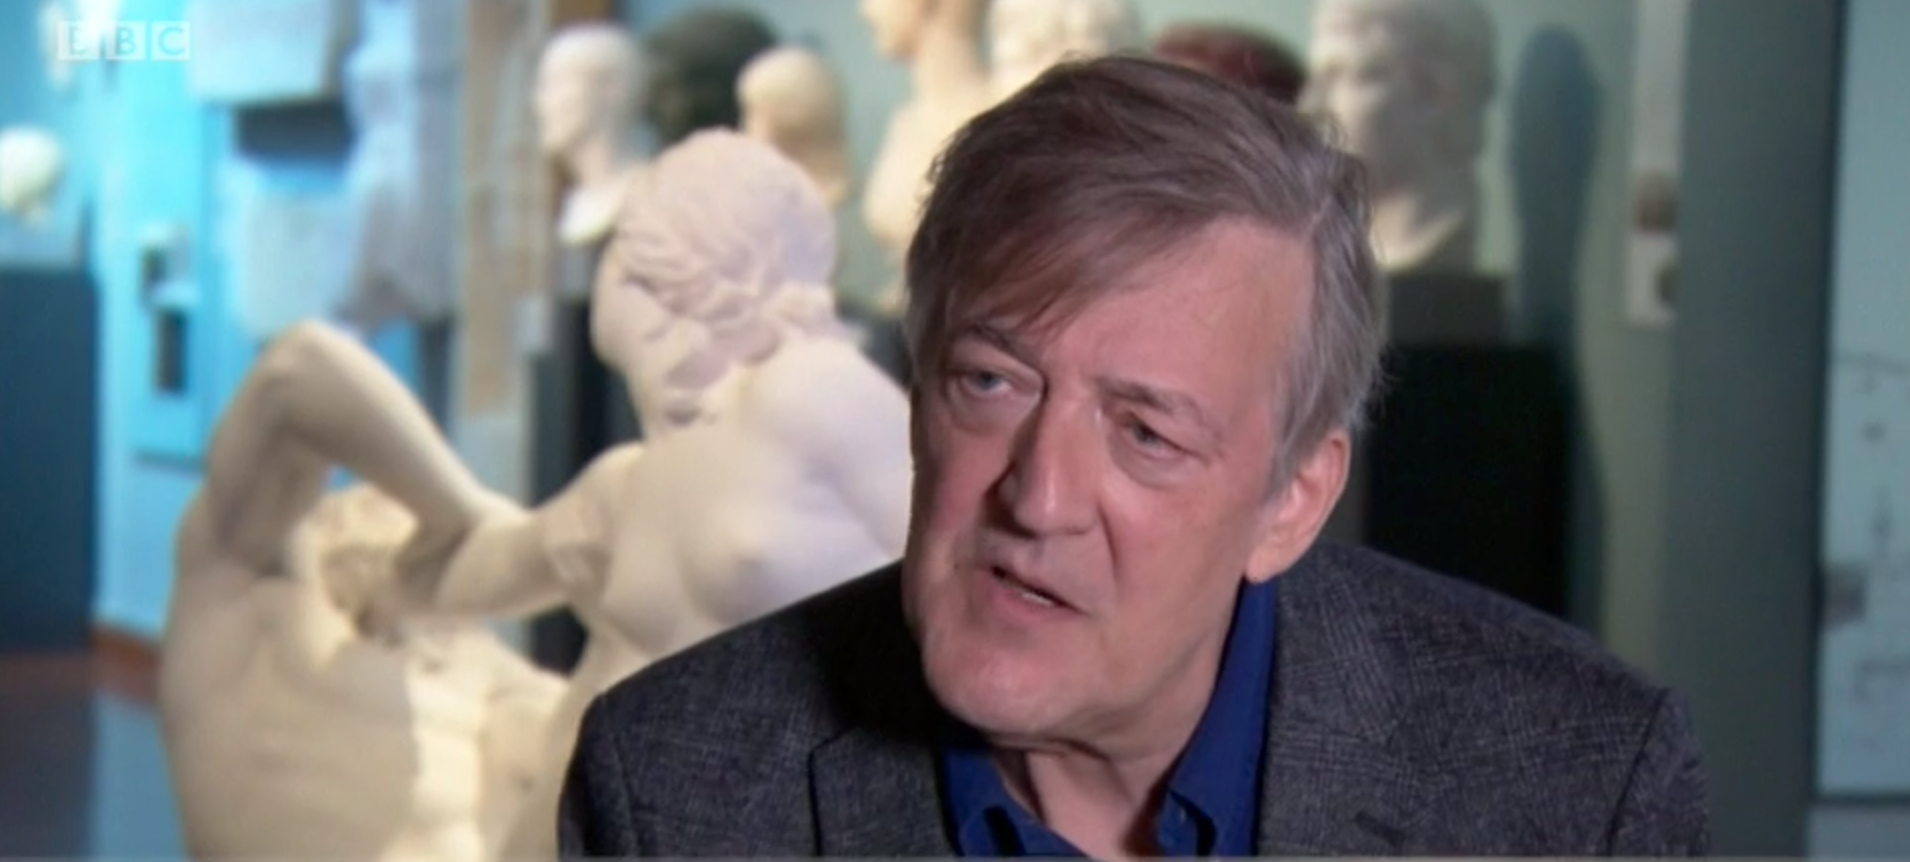 Stephen Fry calls for intersex people to be treated with 'common politeness and decency'